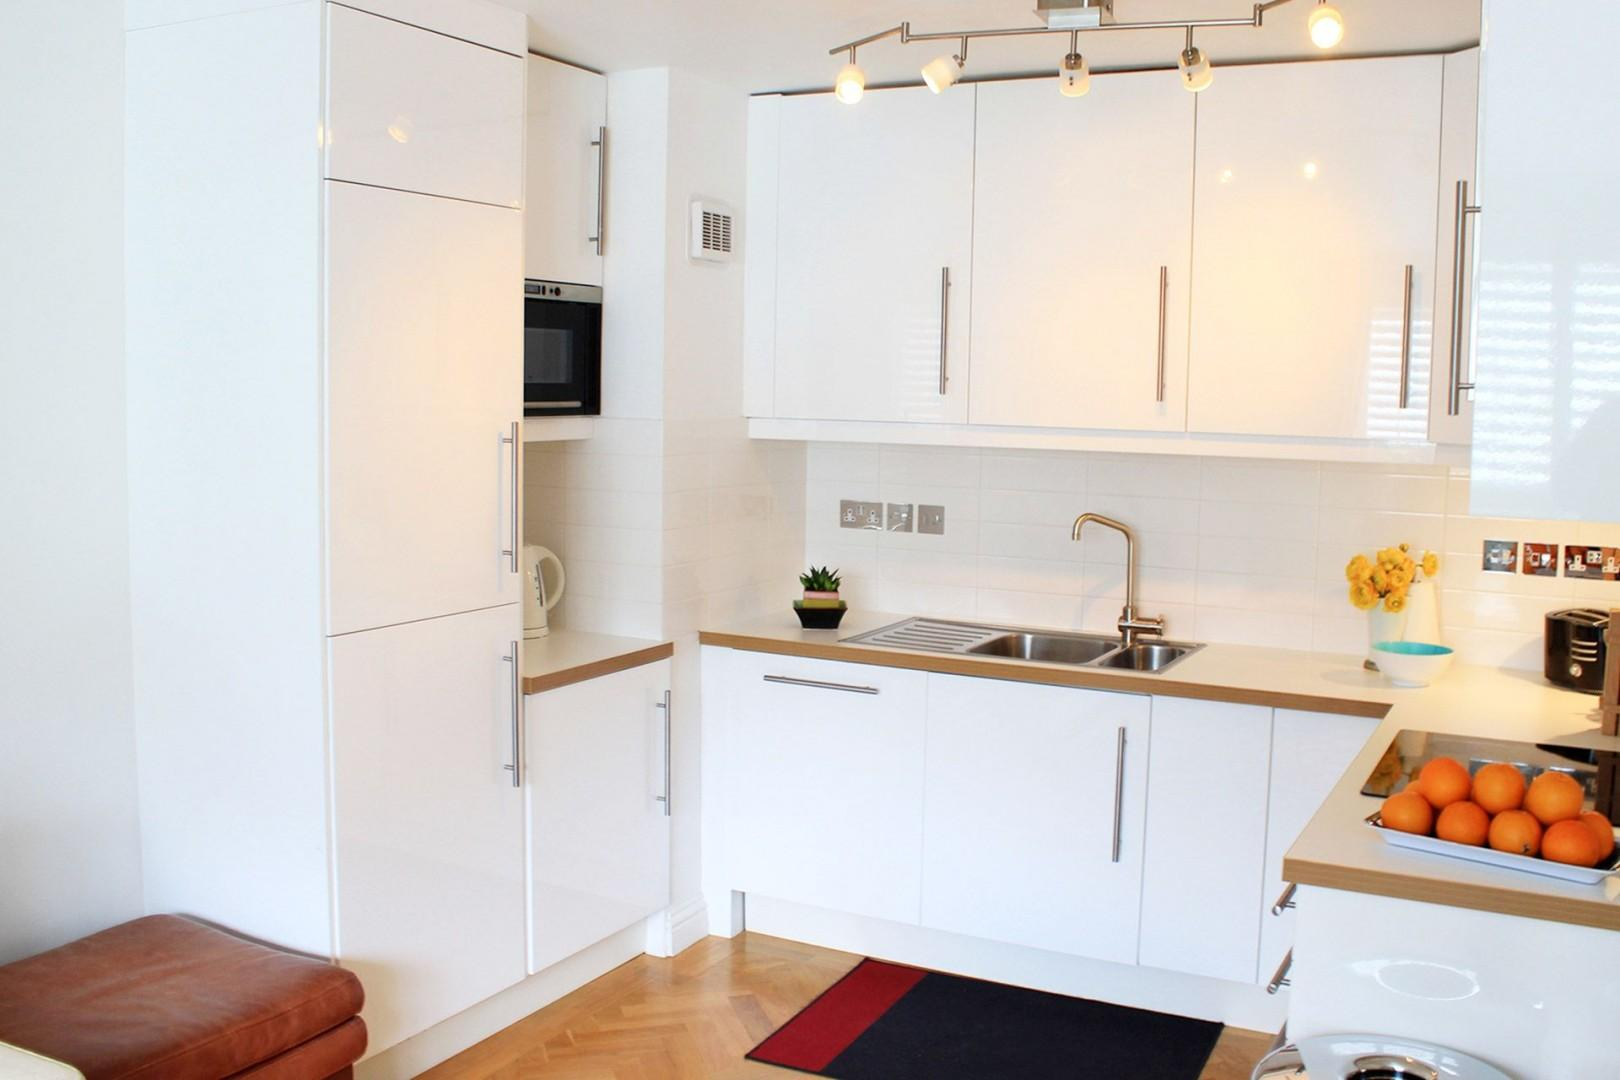 Fully equipped kitchen with every appliance you need